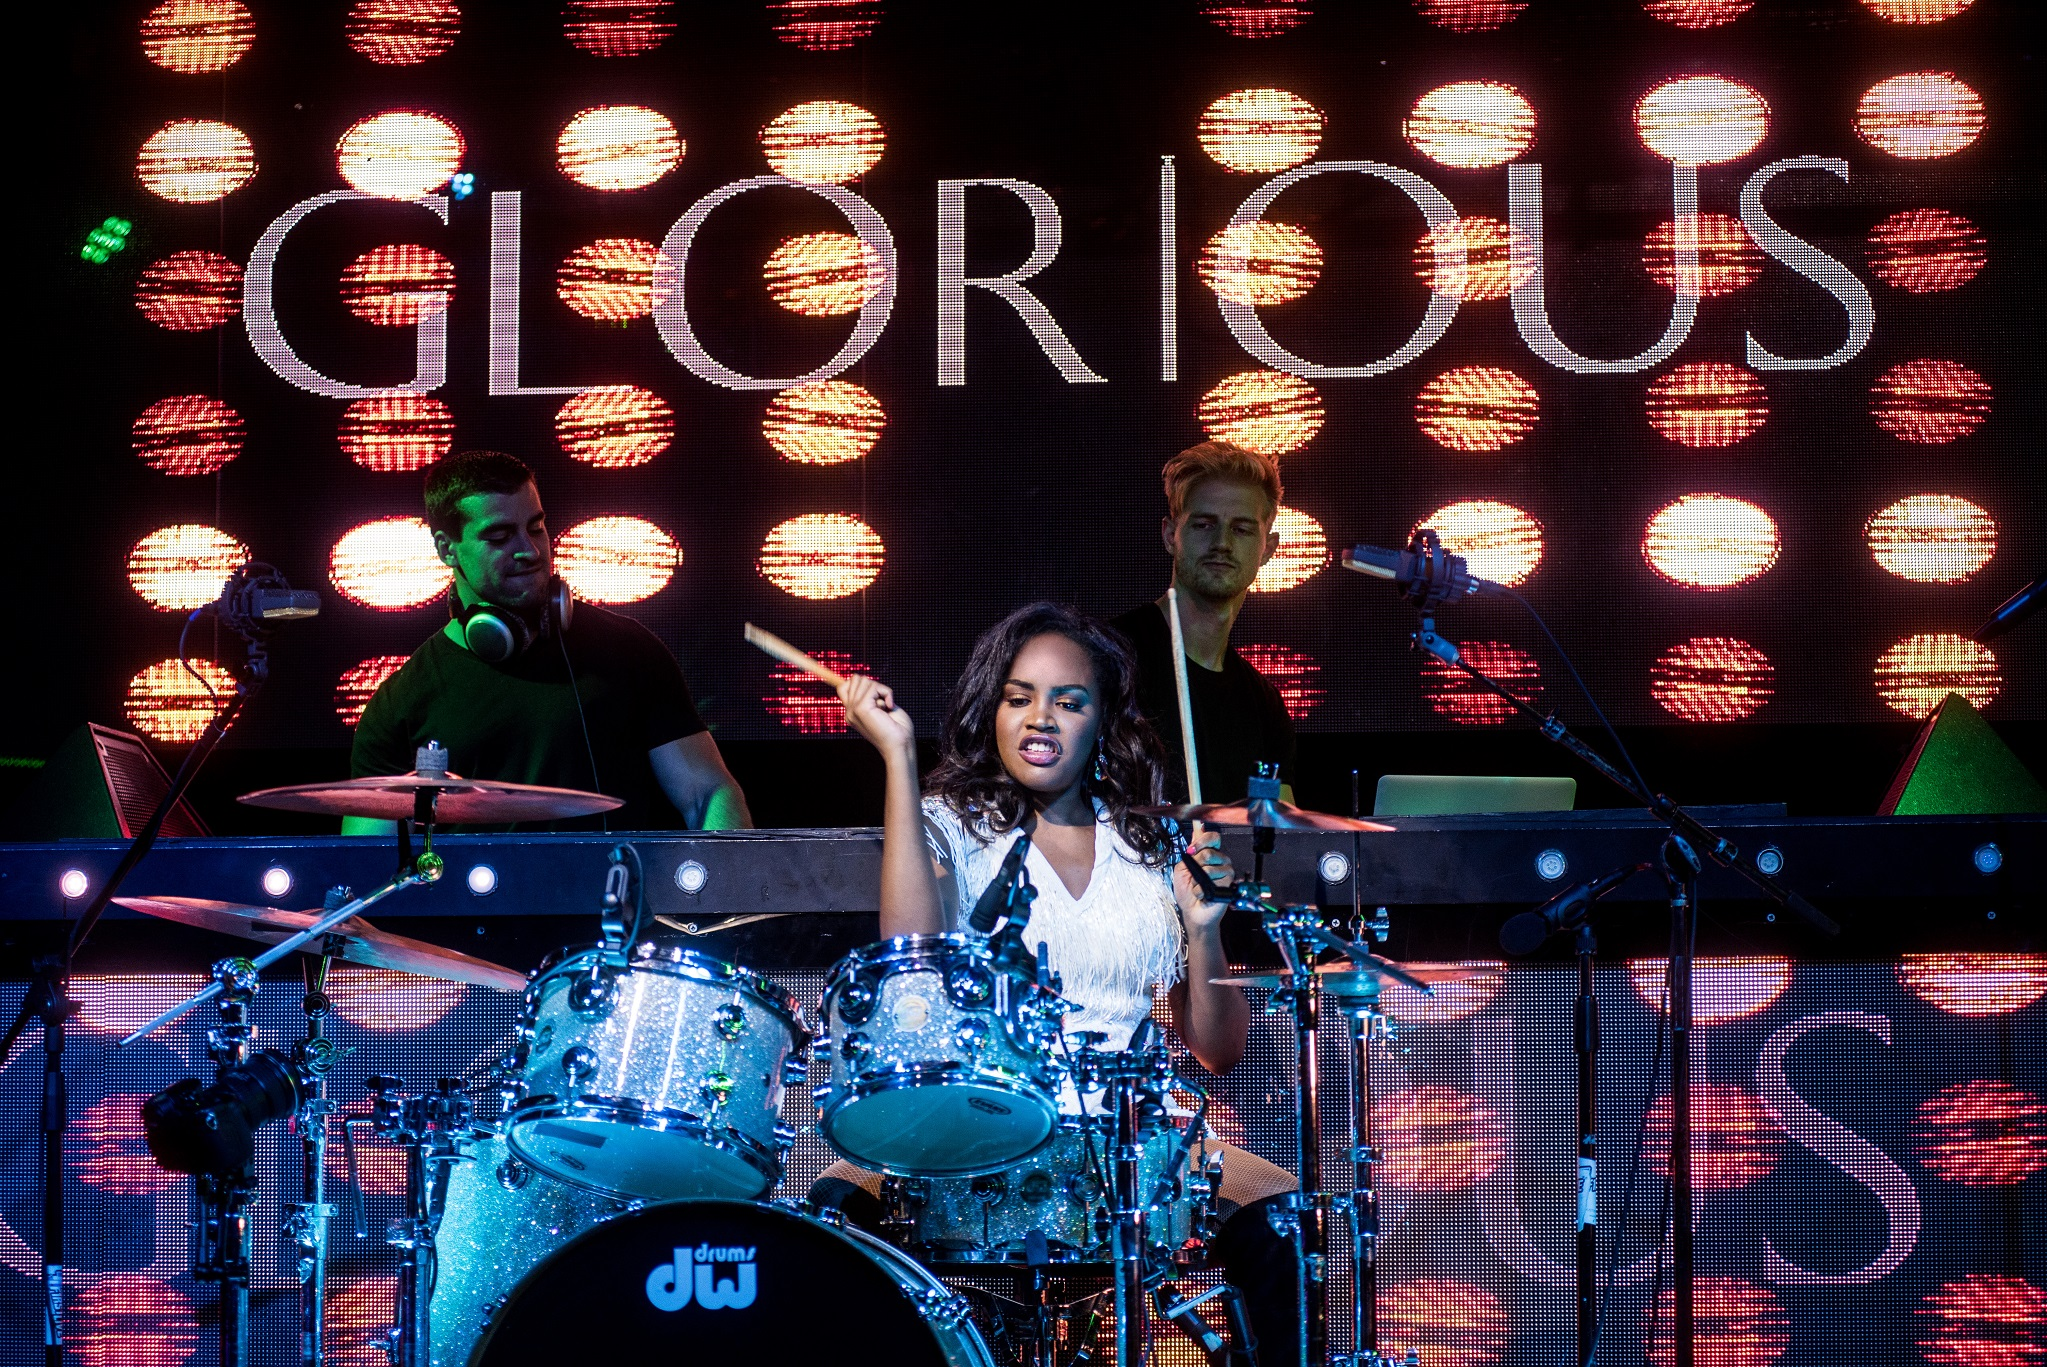 Glorious-Singer-Livetronica Drummer-Producer-Songwriter-Marquee-Nightclub-Video-New York-NY-35lr.jpg